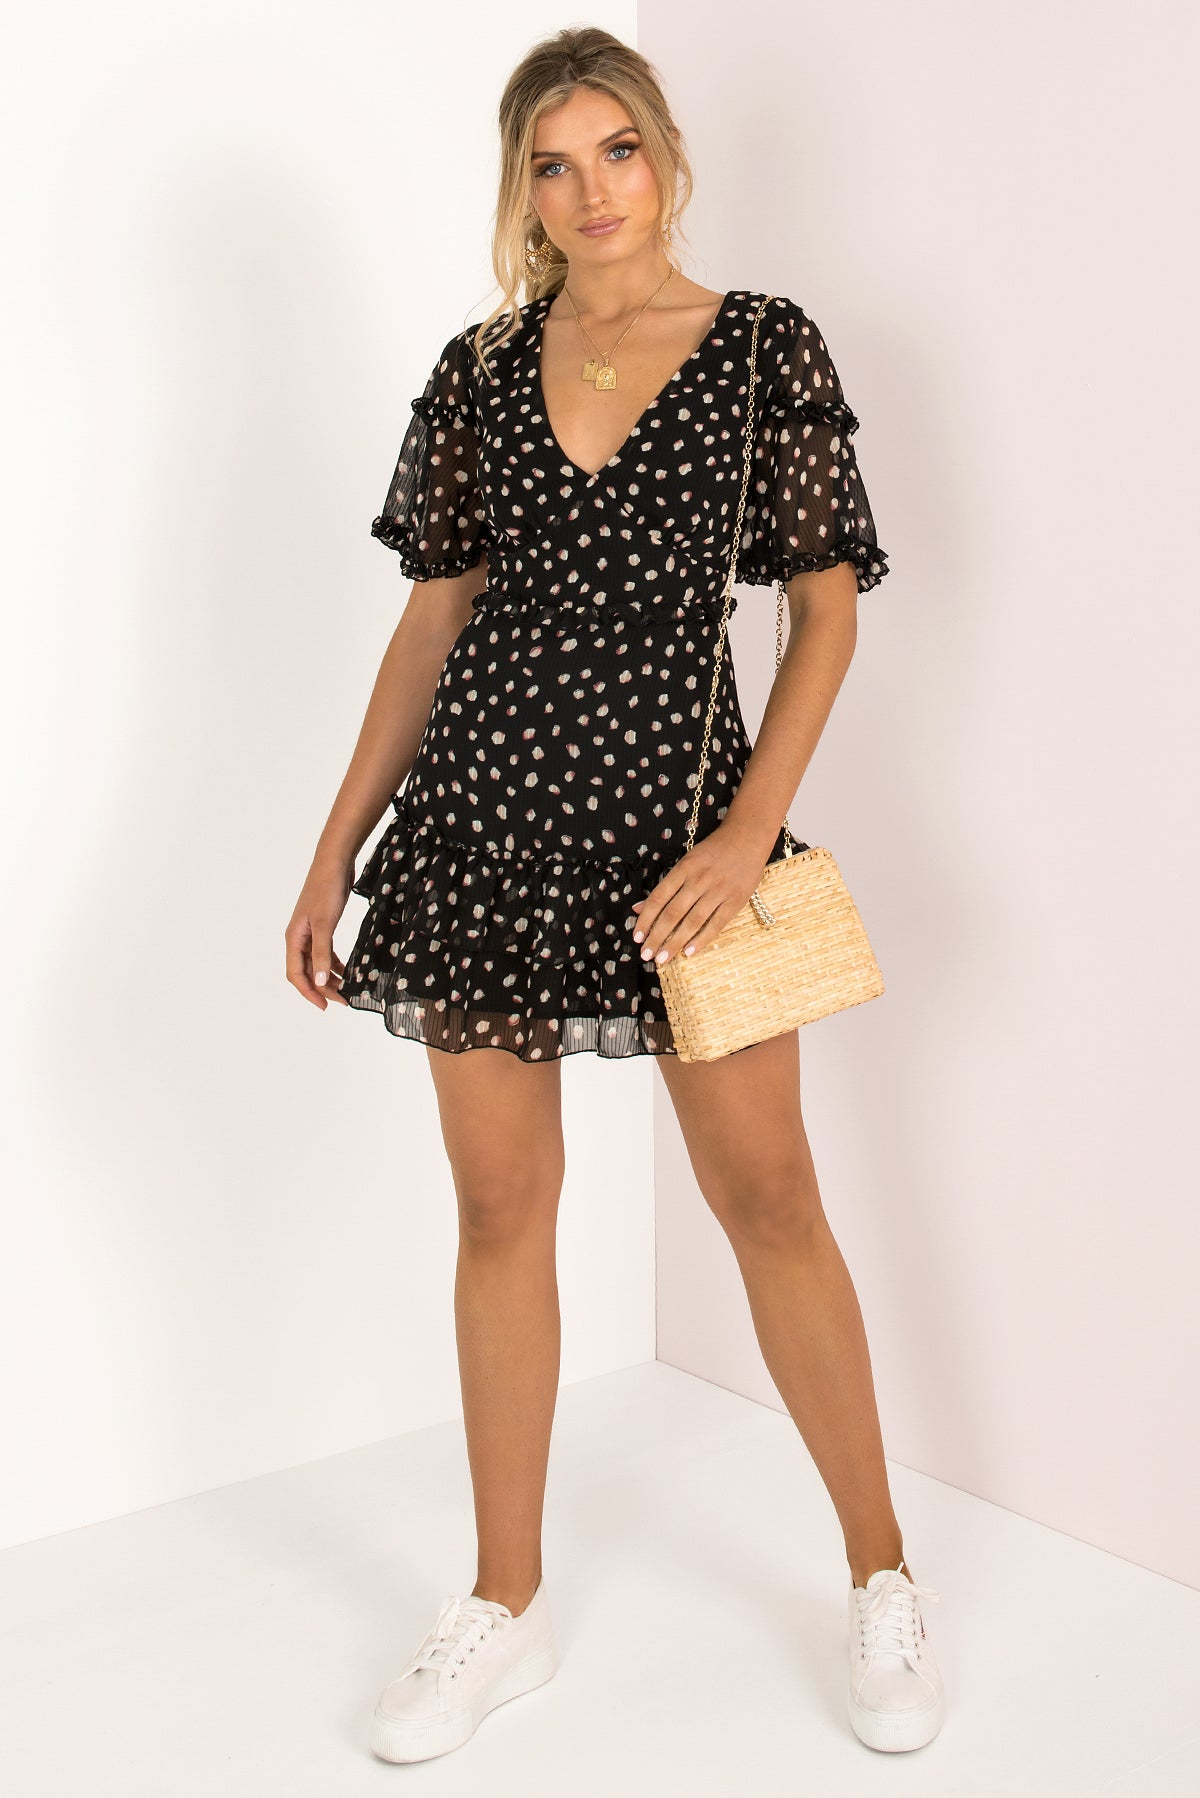 Josie Dress / Spot